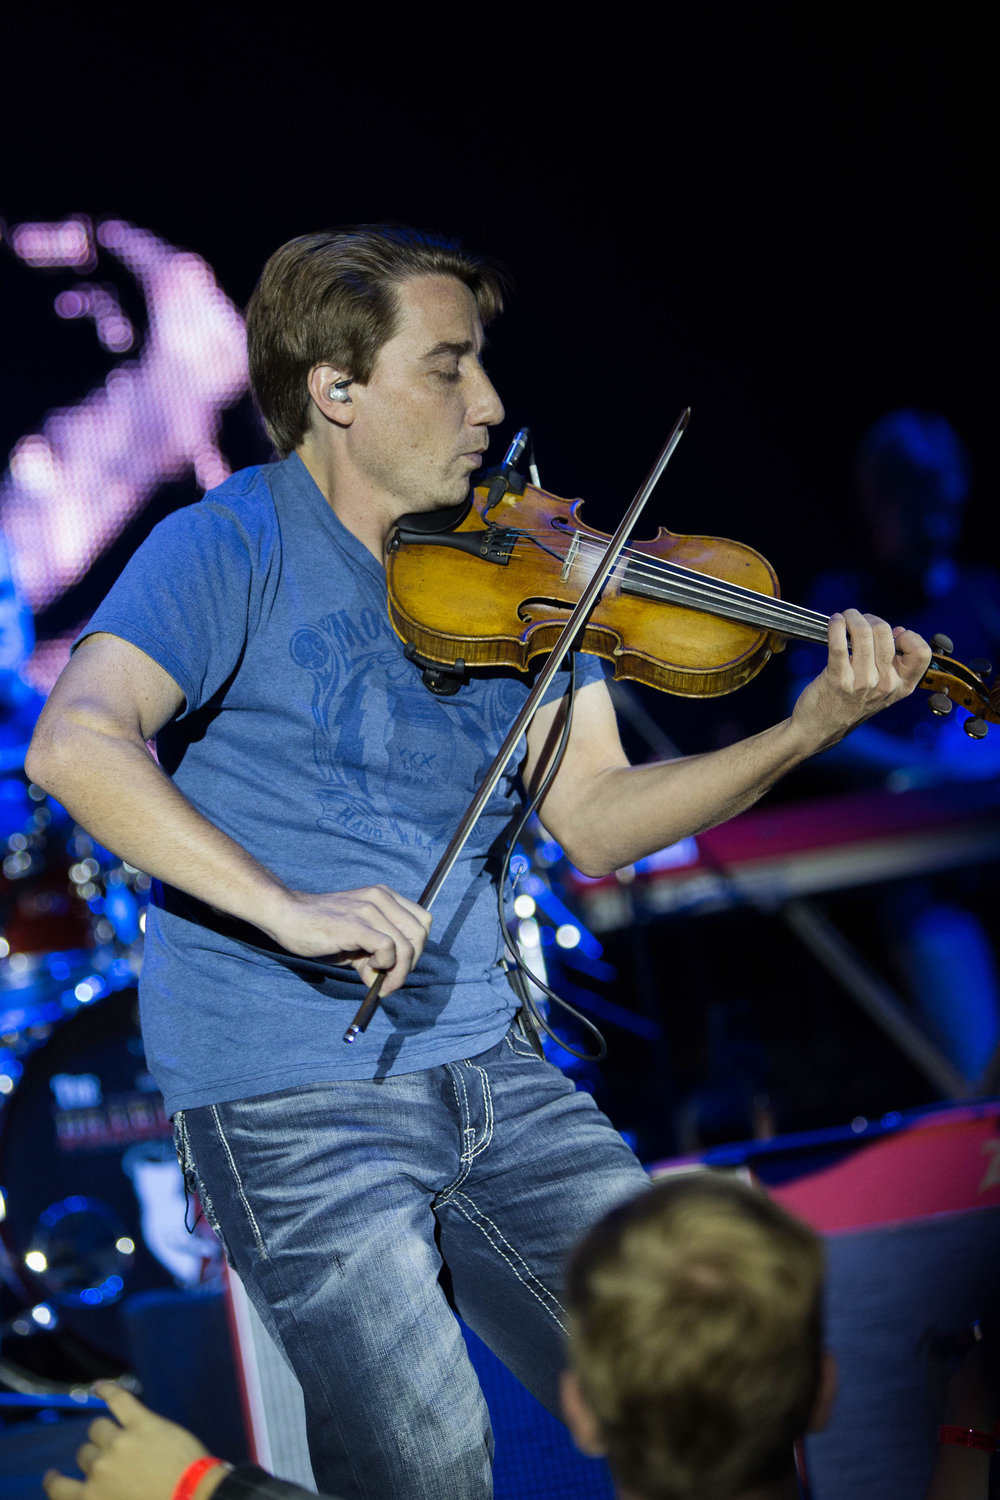 Justin Williamson plays the fiddle and mandolin in Paisley's current band. He played with Paisley at the concert in Gampel on Friday, Oct. 7. (Jackson Hanks/The Daily Campus)